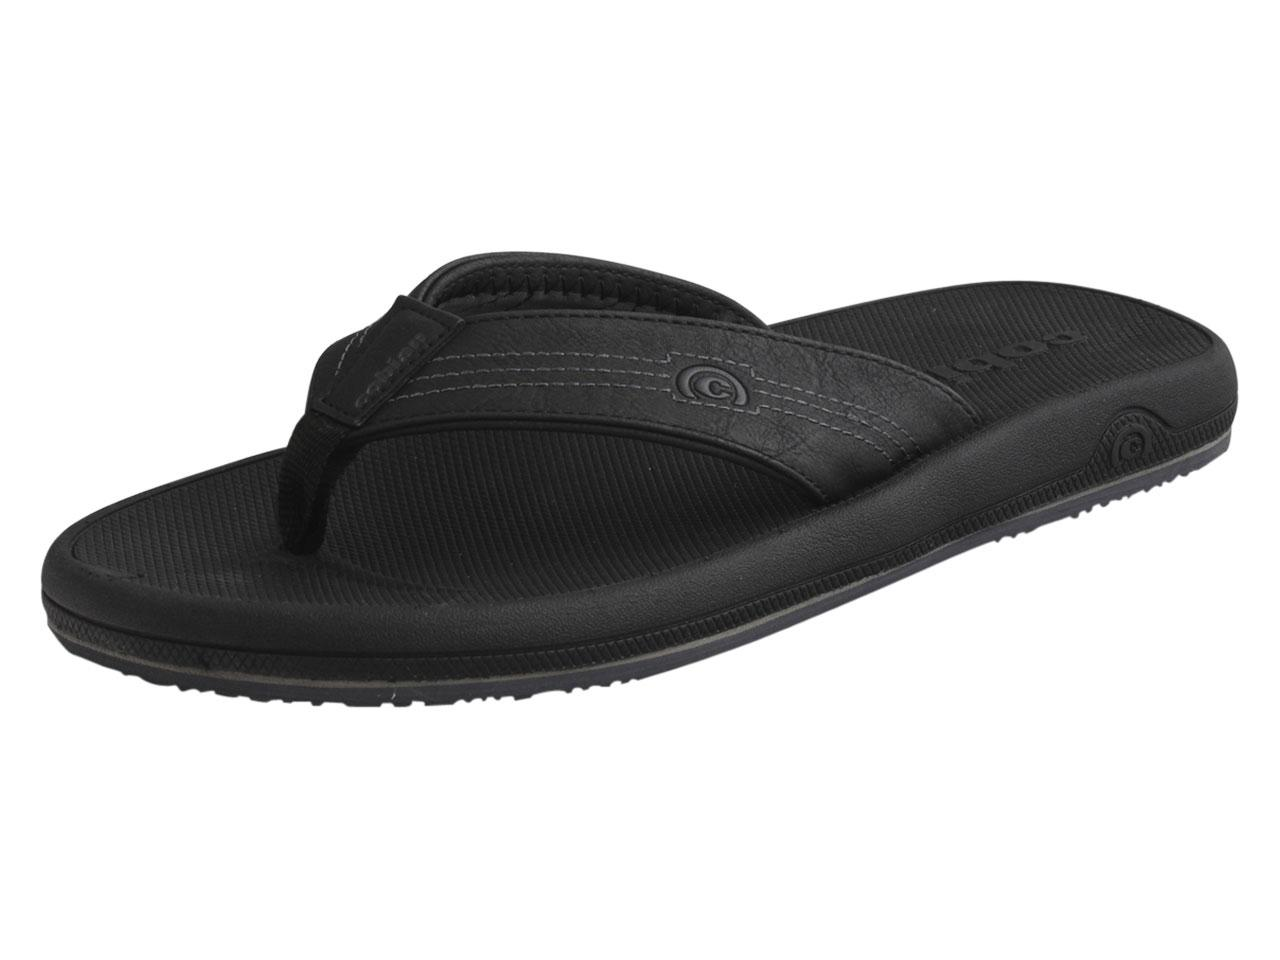 c8f4ea3970c Cobian Men s OTG Flip Flops Sandals Shoes